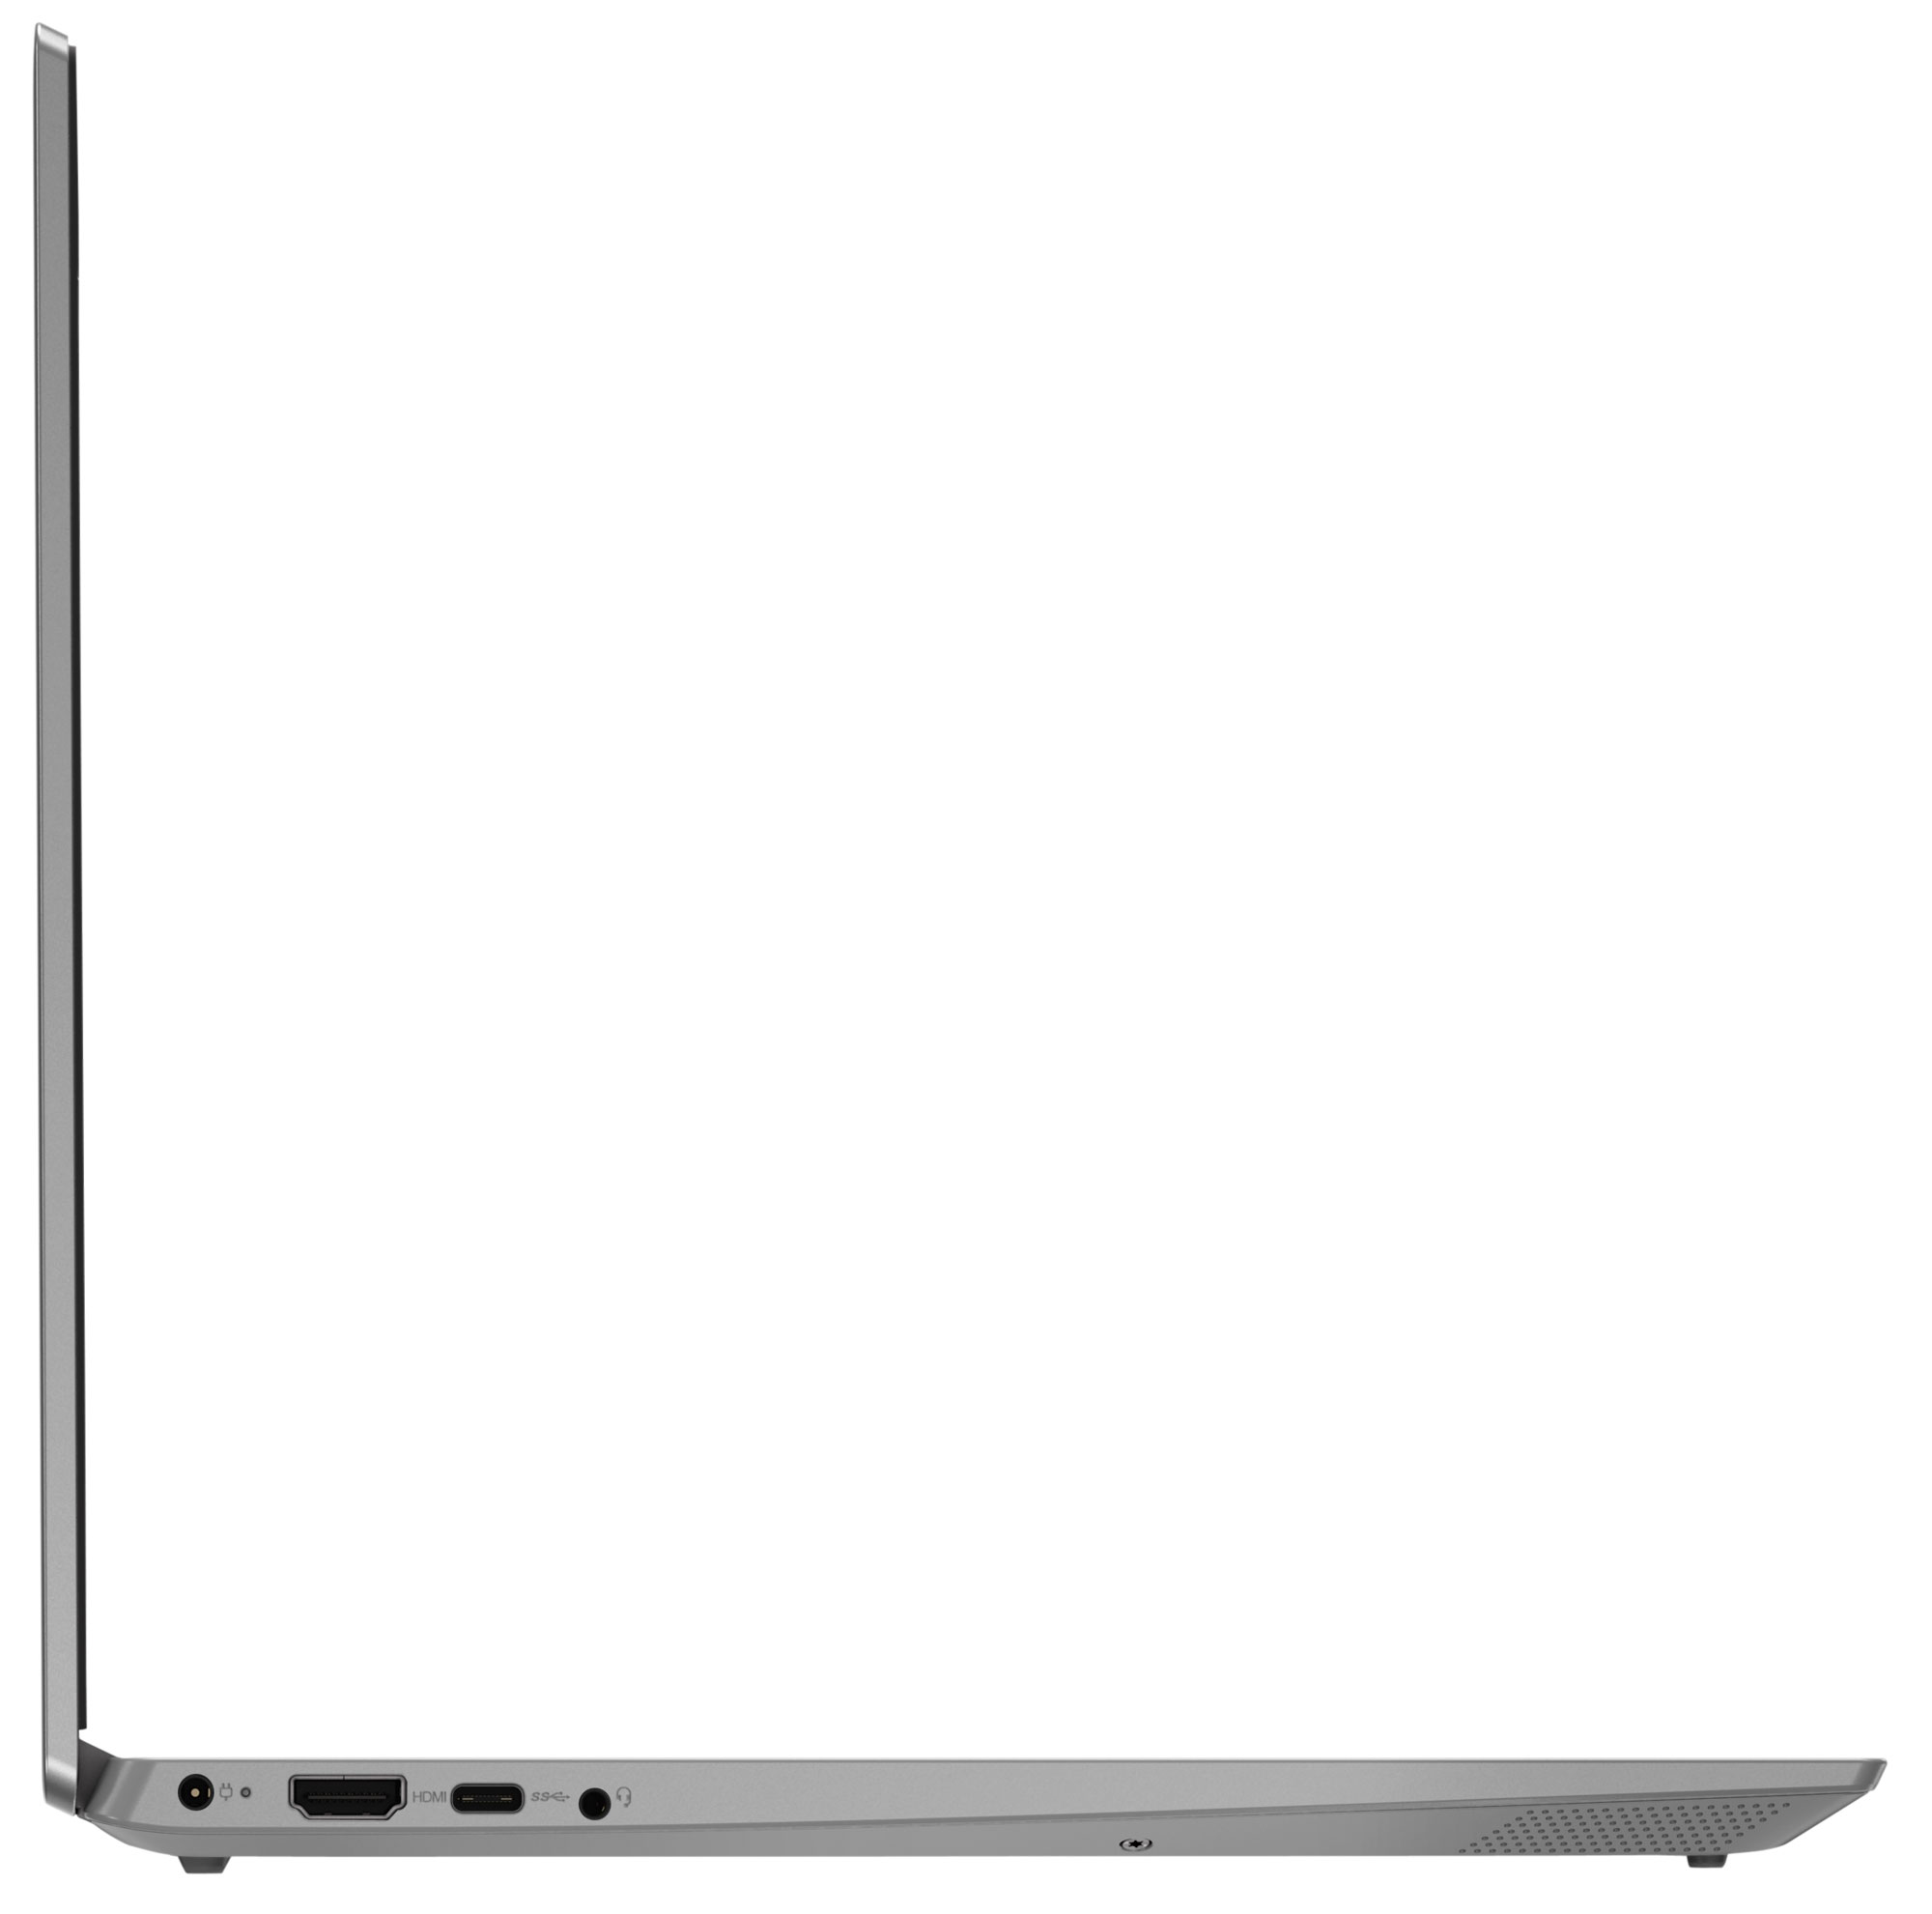 Фото  Ноутбук Lenovo ideapad S340-15IWL Platinum Grey (81N800S9RE)